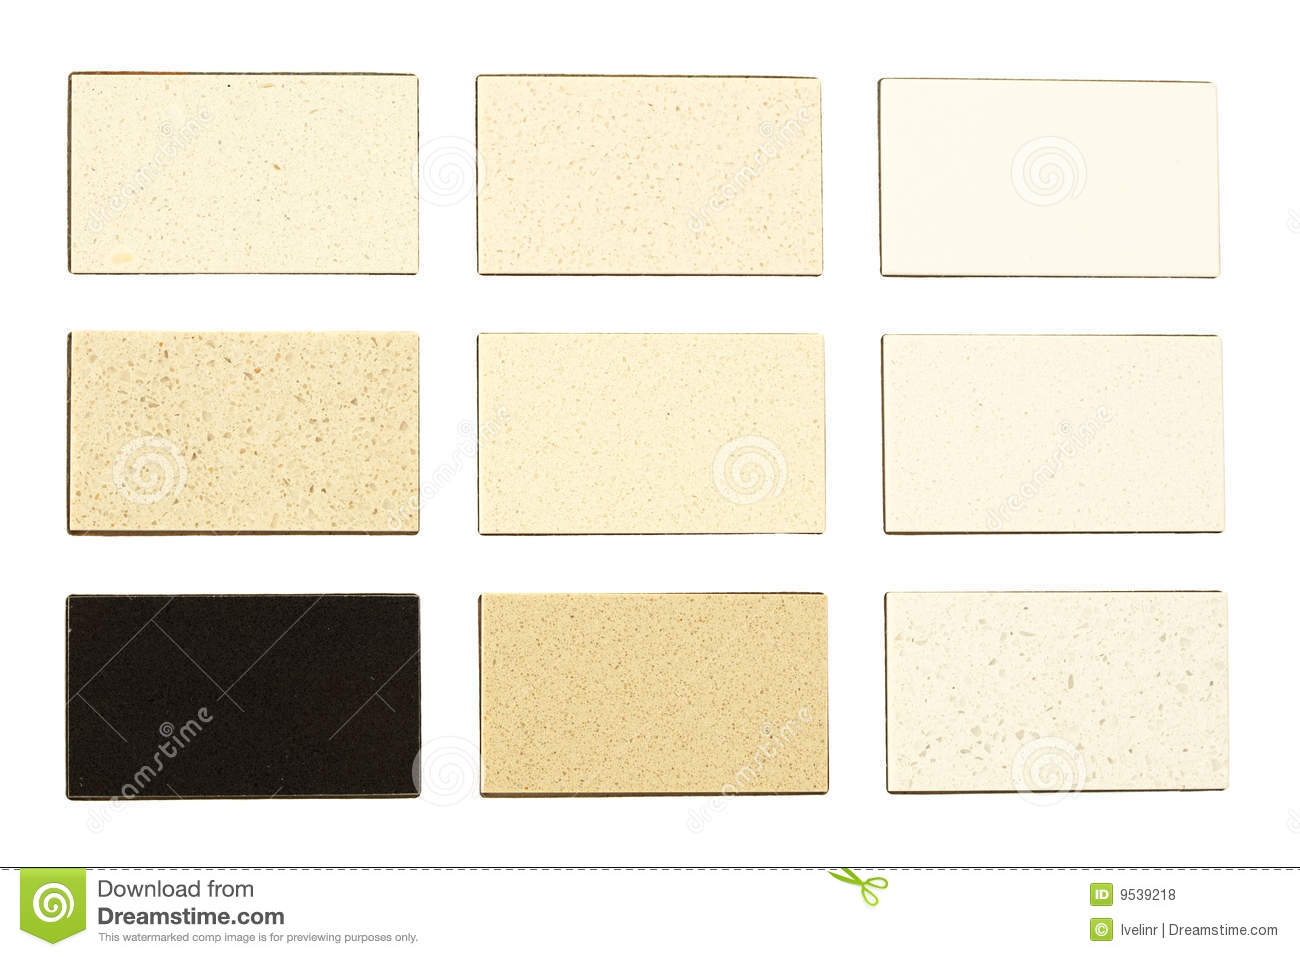 Granite samples for kitchen countertops royalty free stock for Kitchen samples